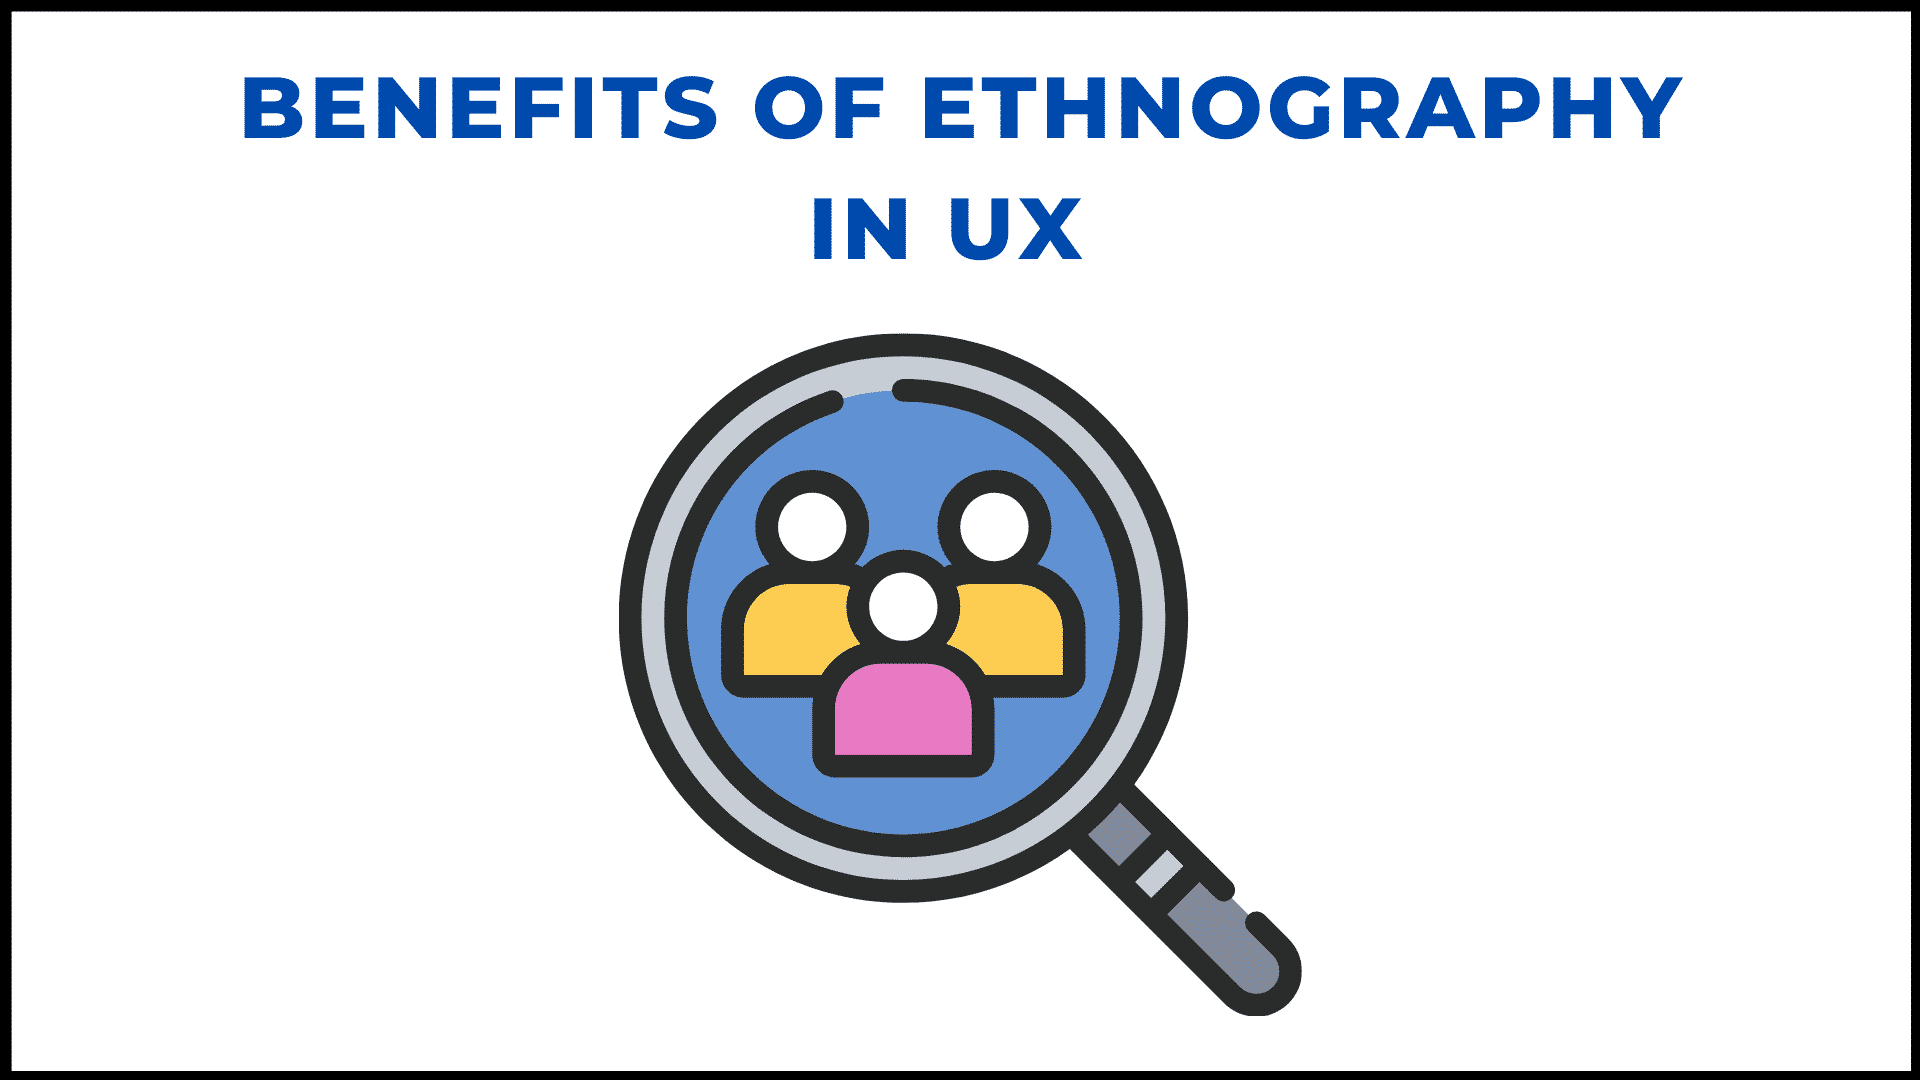 BENEFITS OF ETHNOGRAPHY IN UX